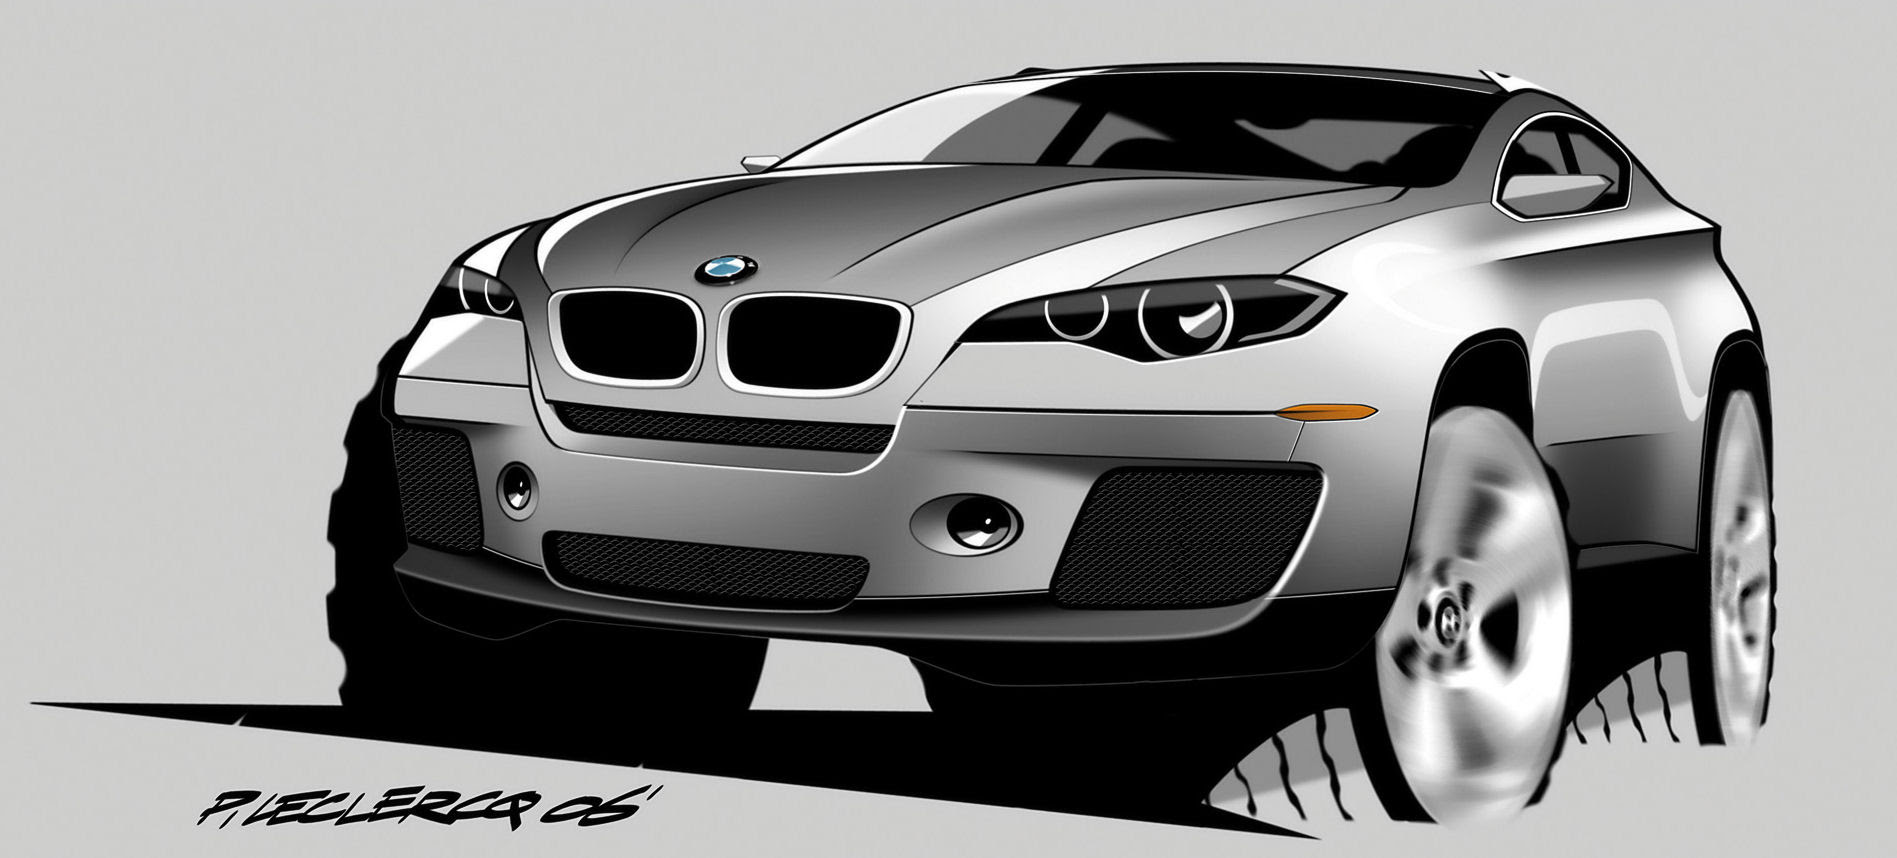 coloriage de voiture bmw x6 imprimer et obtenir une. Black Bedroom Furniture Sets. Home Design Ideas